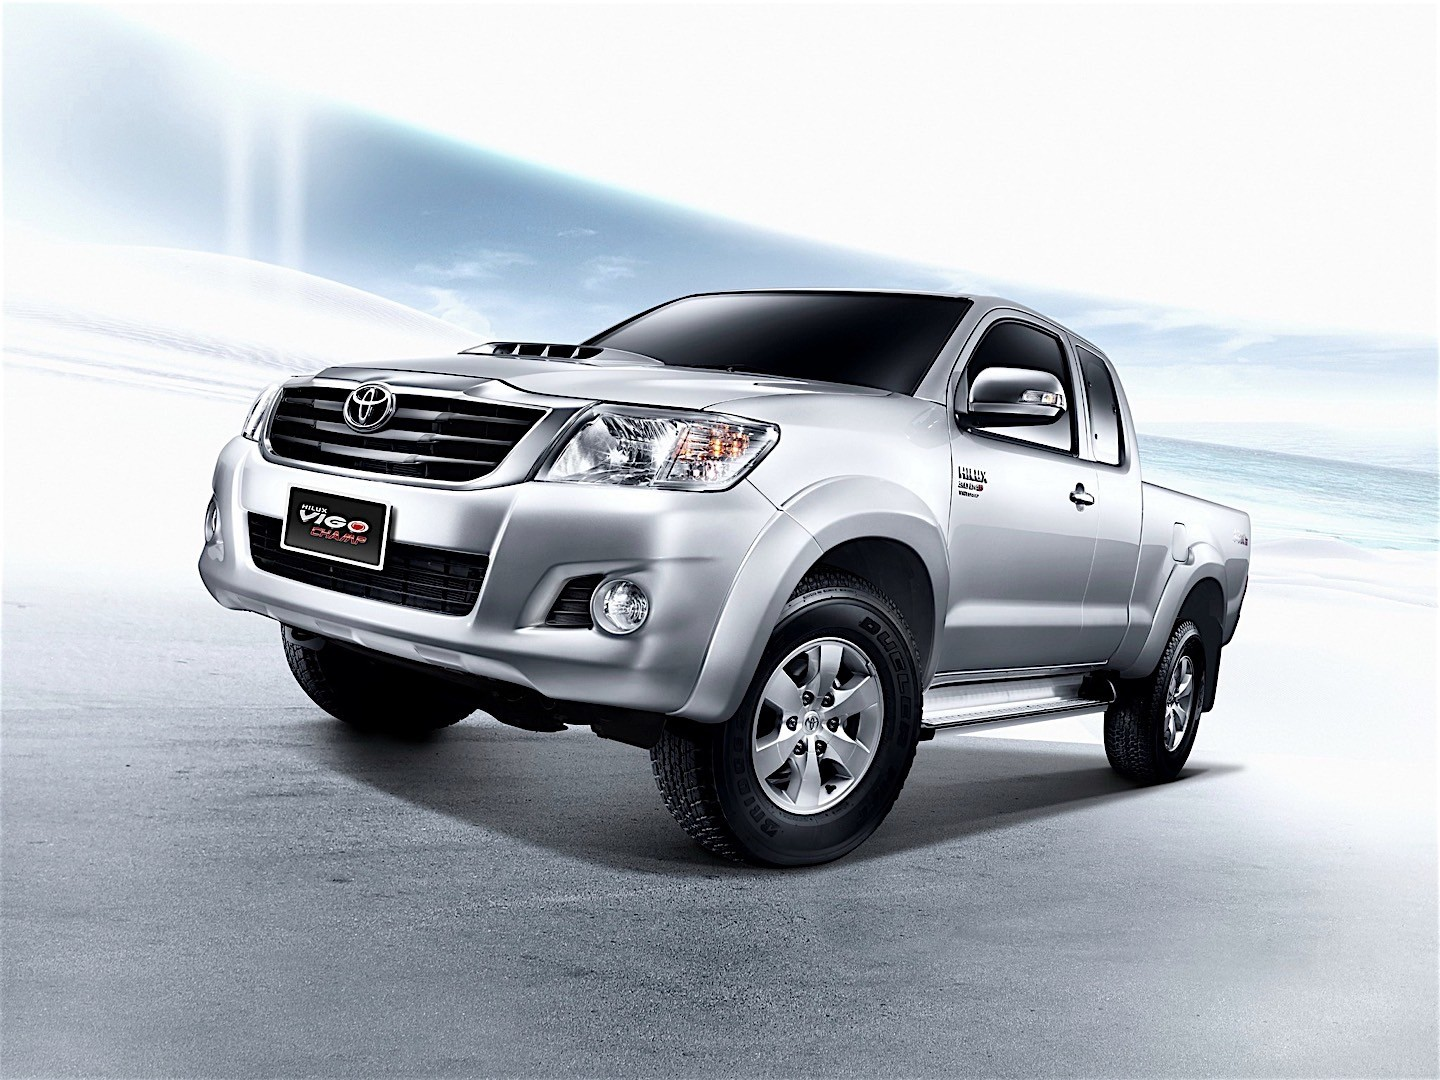 toyota hilux extra cab specs 2011 2012 2013 2014 2015 autoevolution. Black Bedroom Furniture Sets. Home Design Ideas